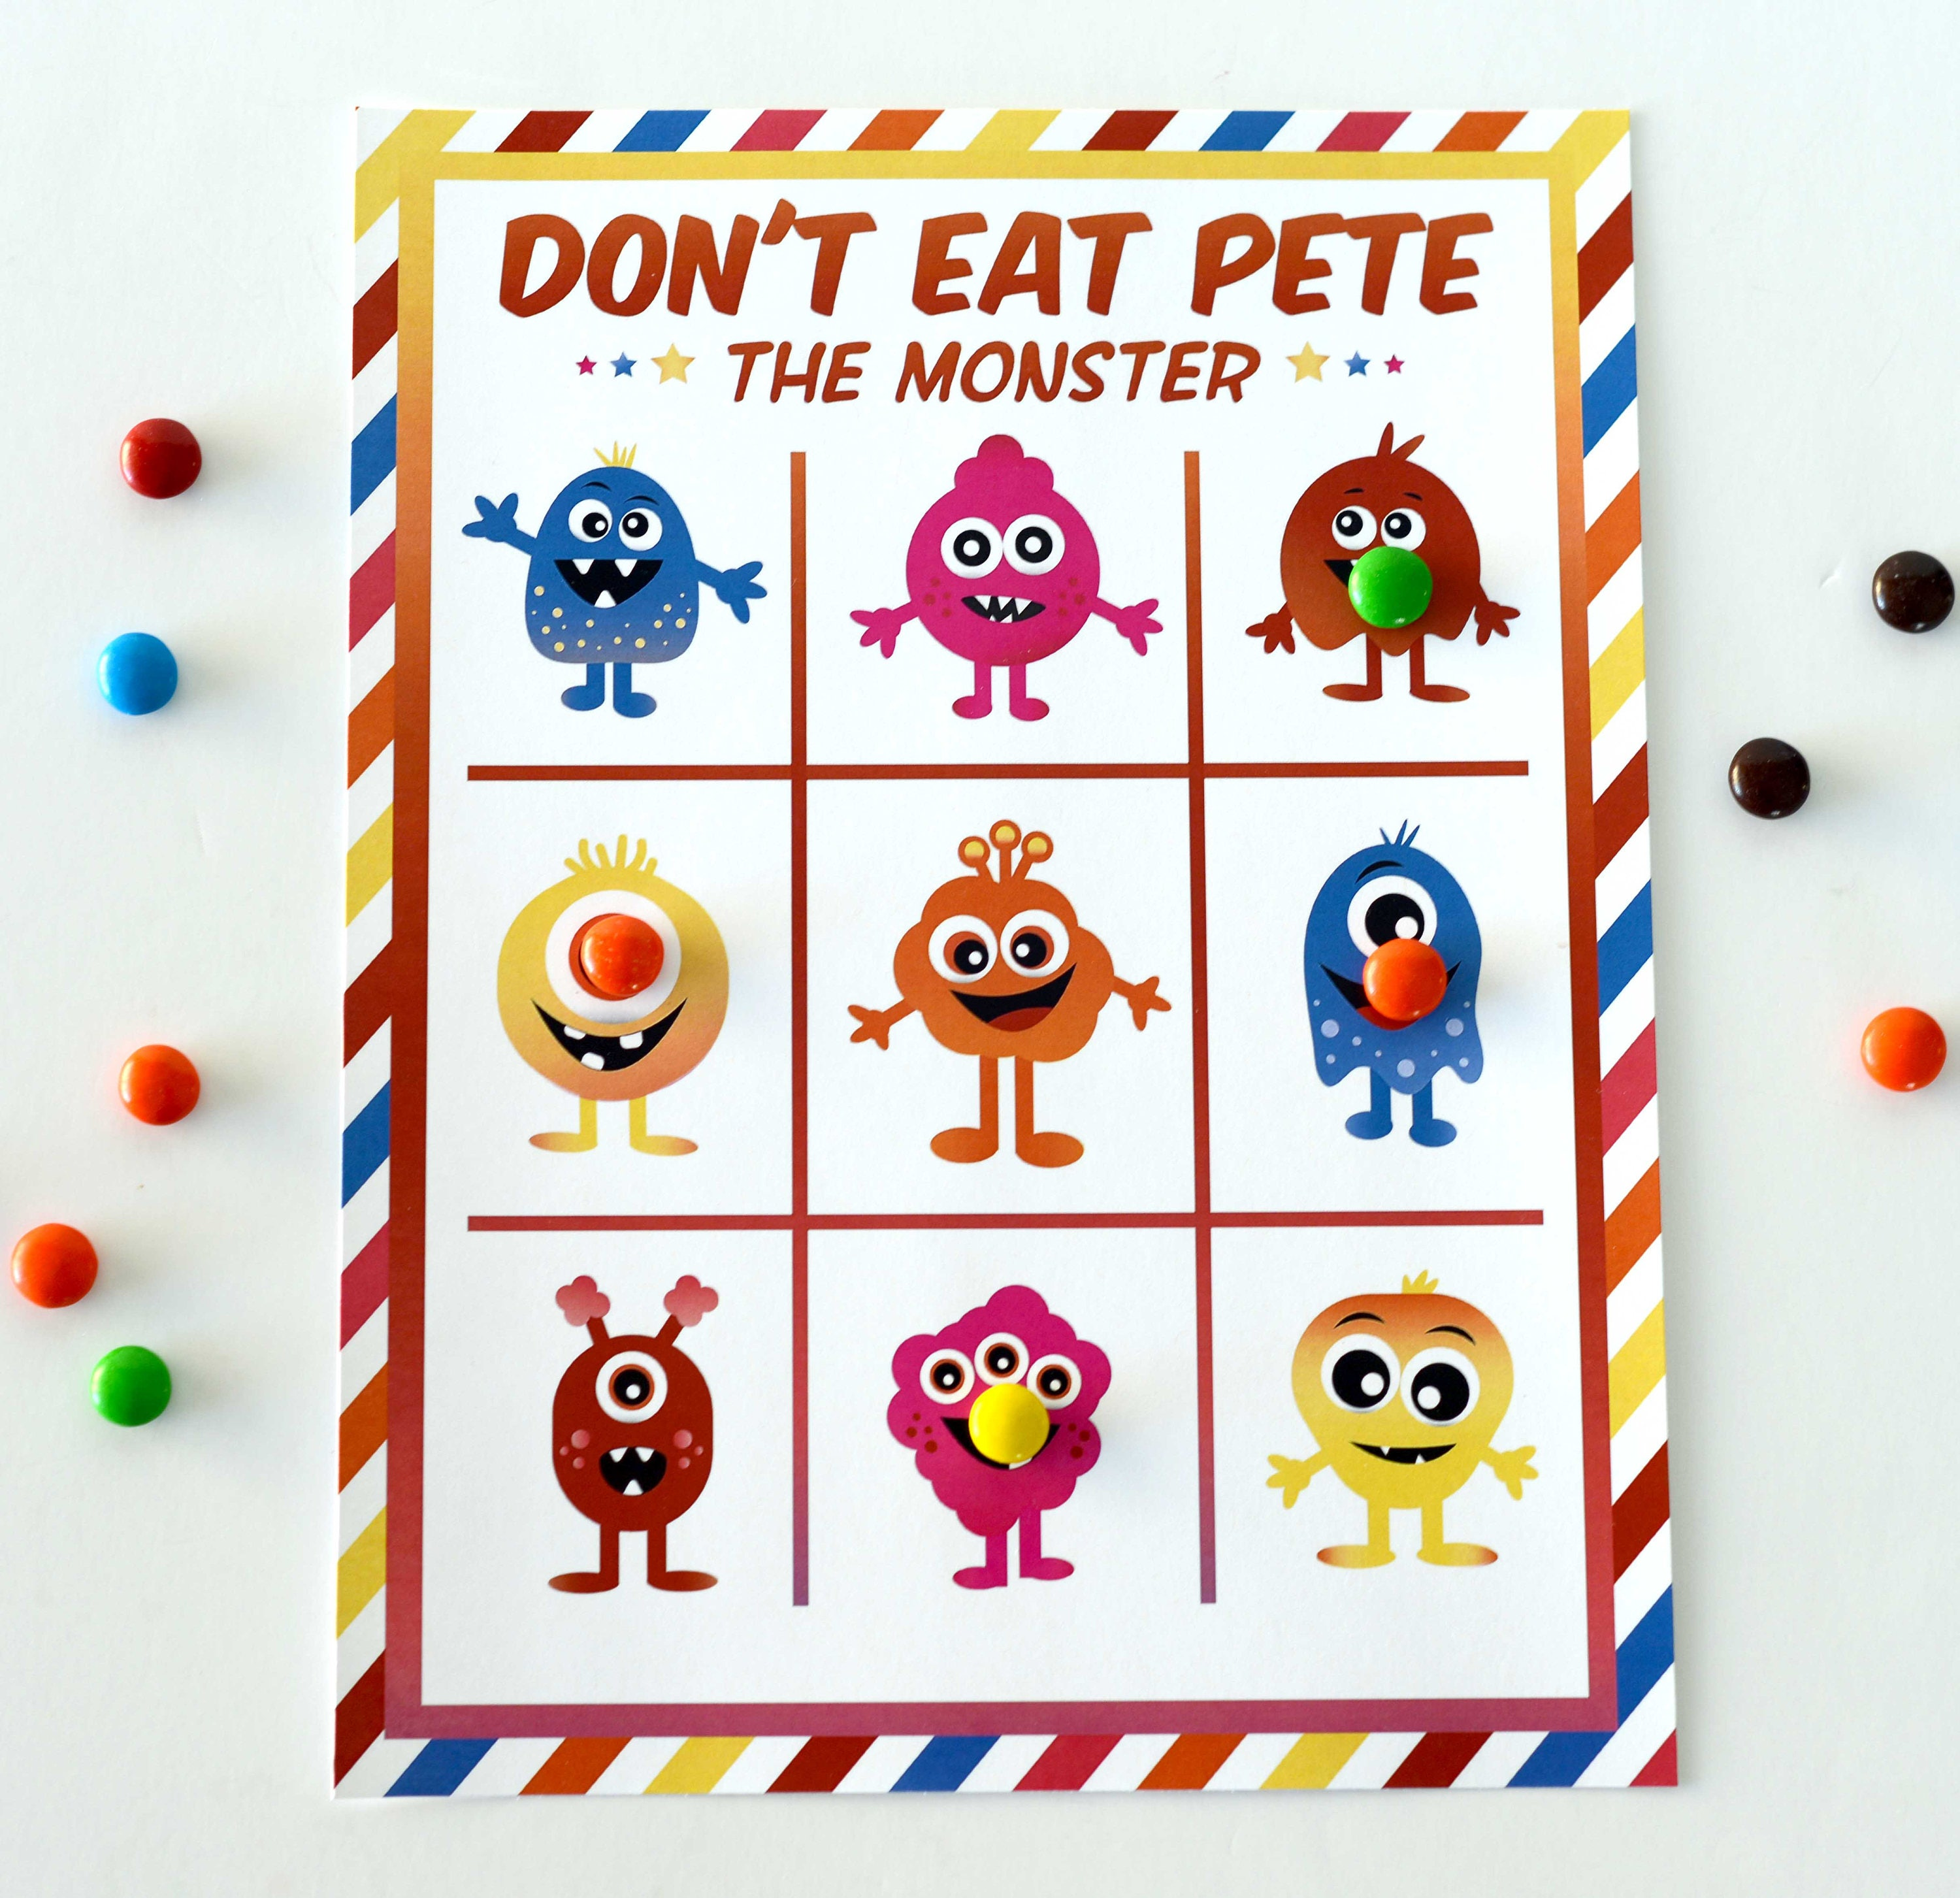 picture about Don't Eat Pete Printable identified as Dont Consume Pete the Monster Printable Activity Printable Obtain Dont Try to eat Pete